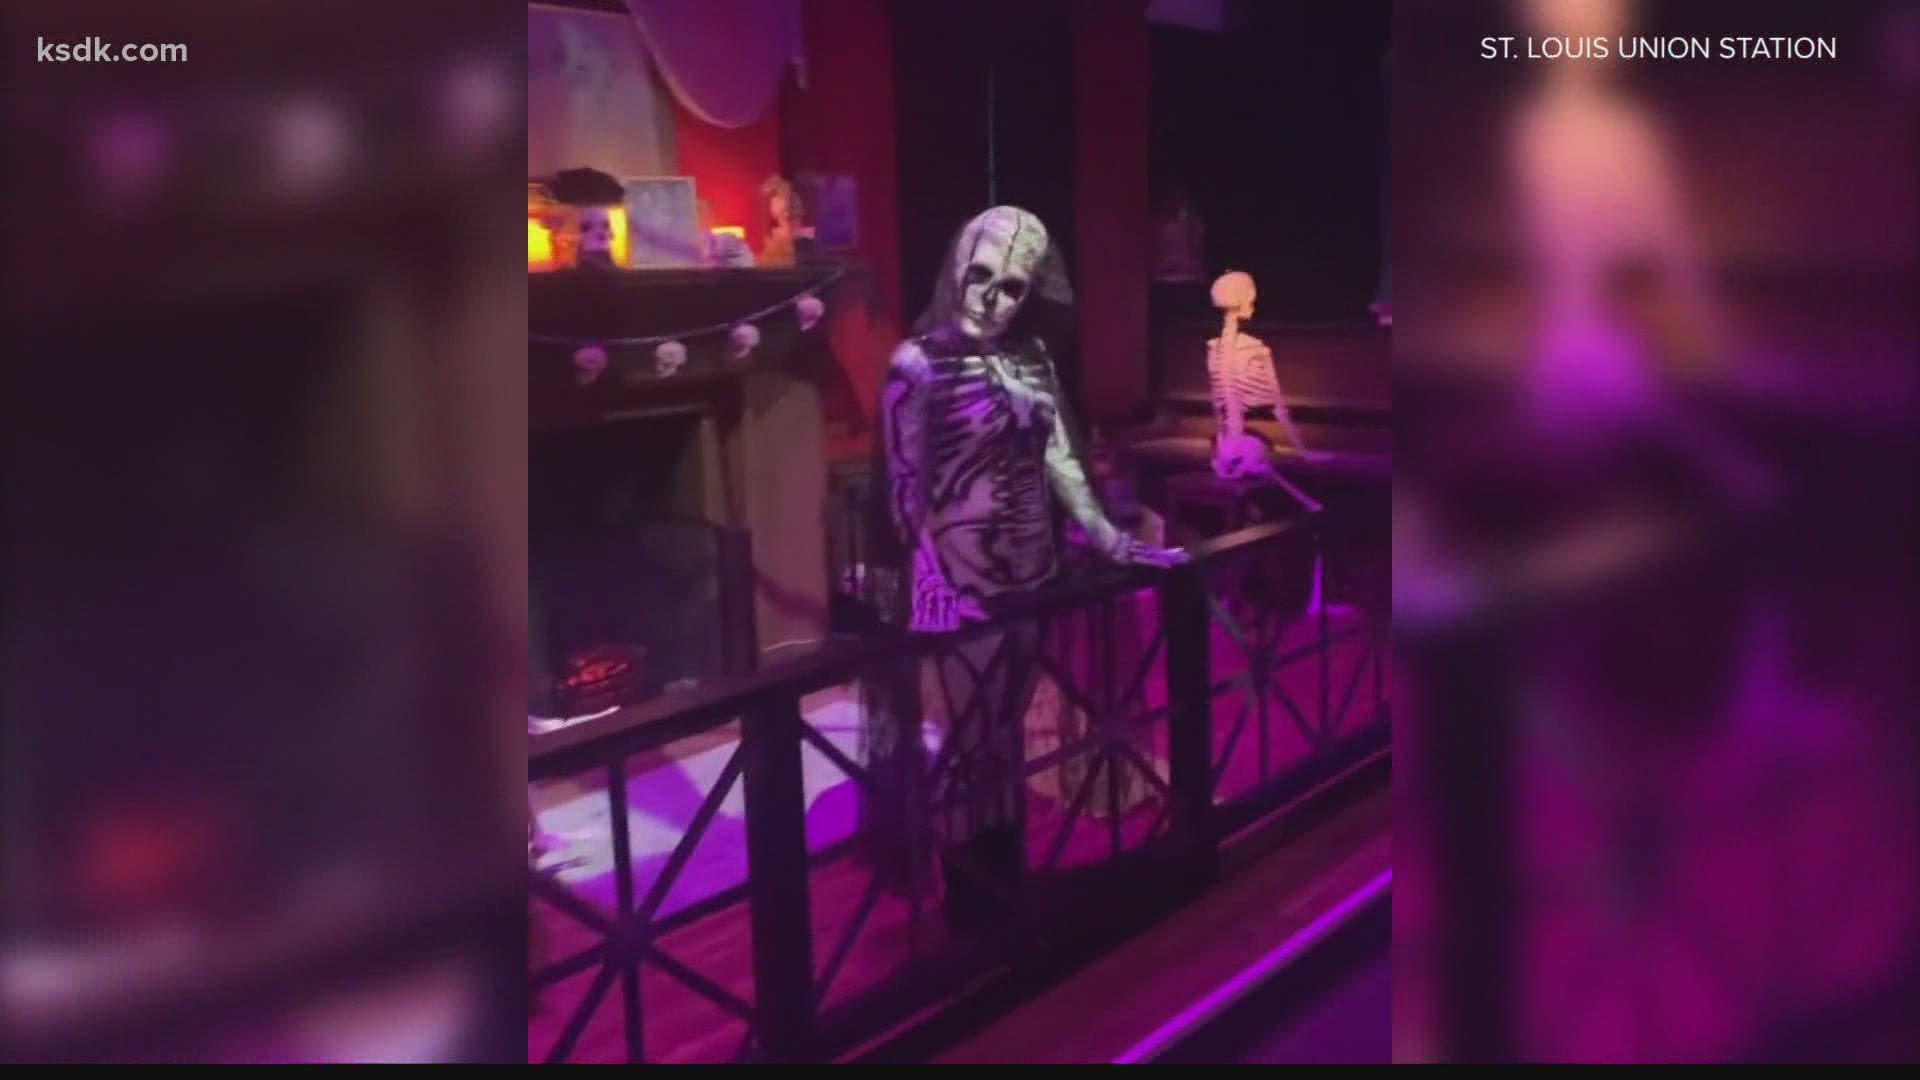 St Louis County Parks Halloween 2020 Union Station holding Halloween experience in 2020 | ksdk.com